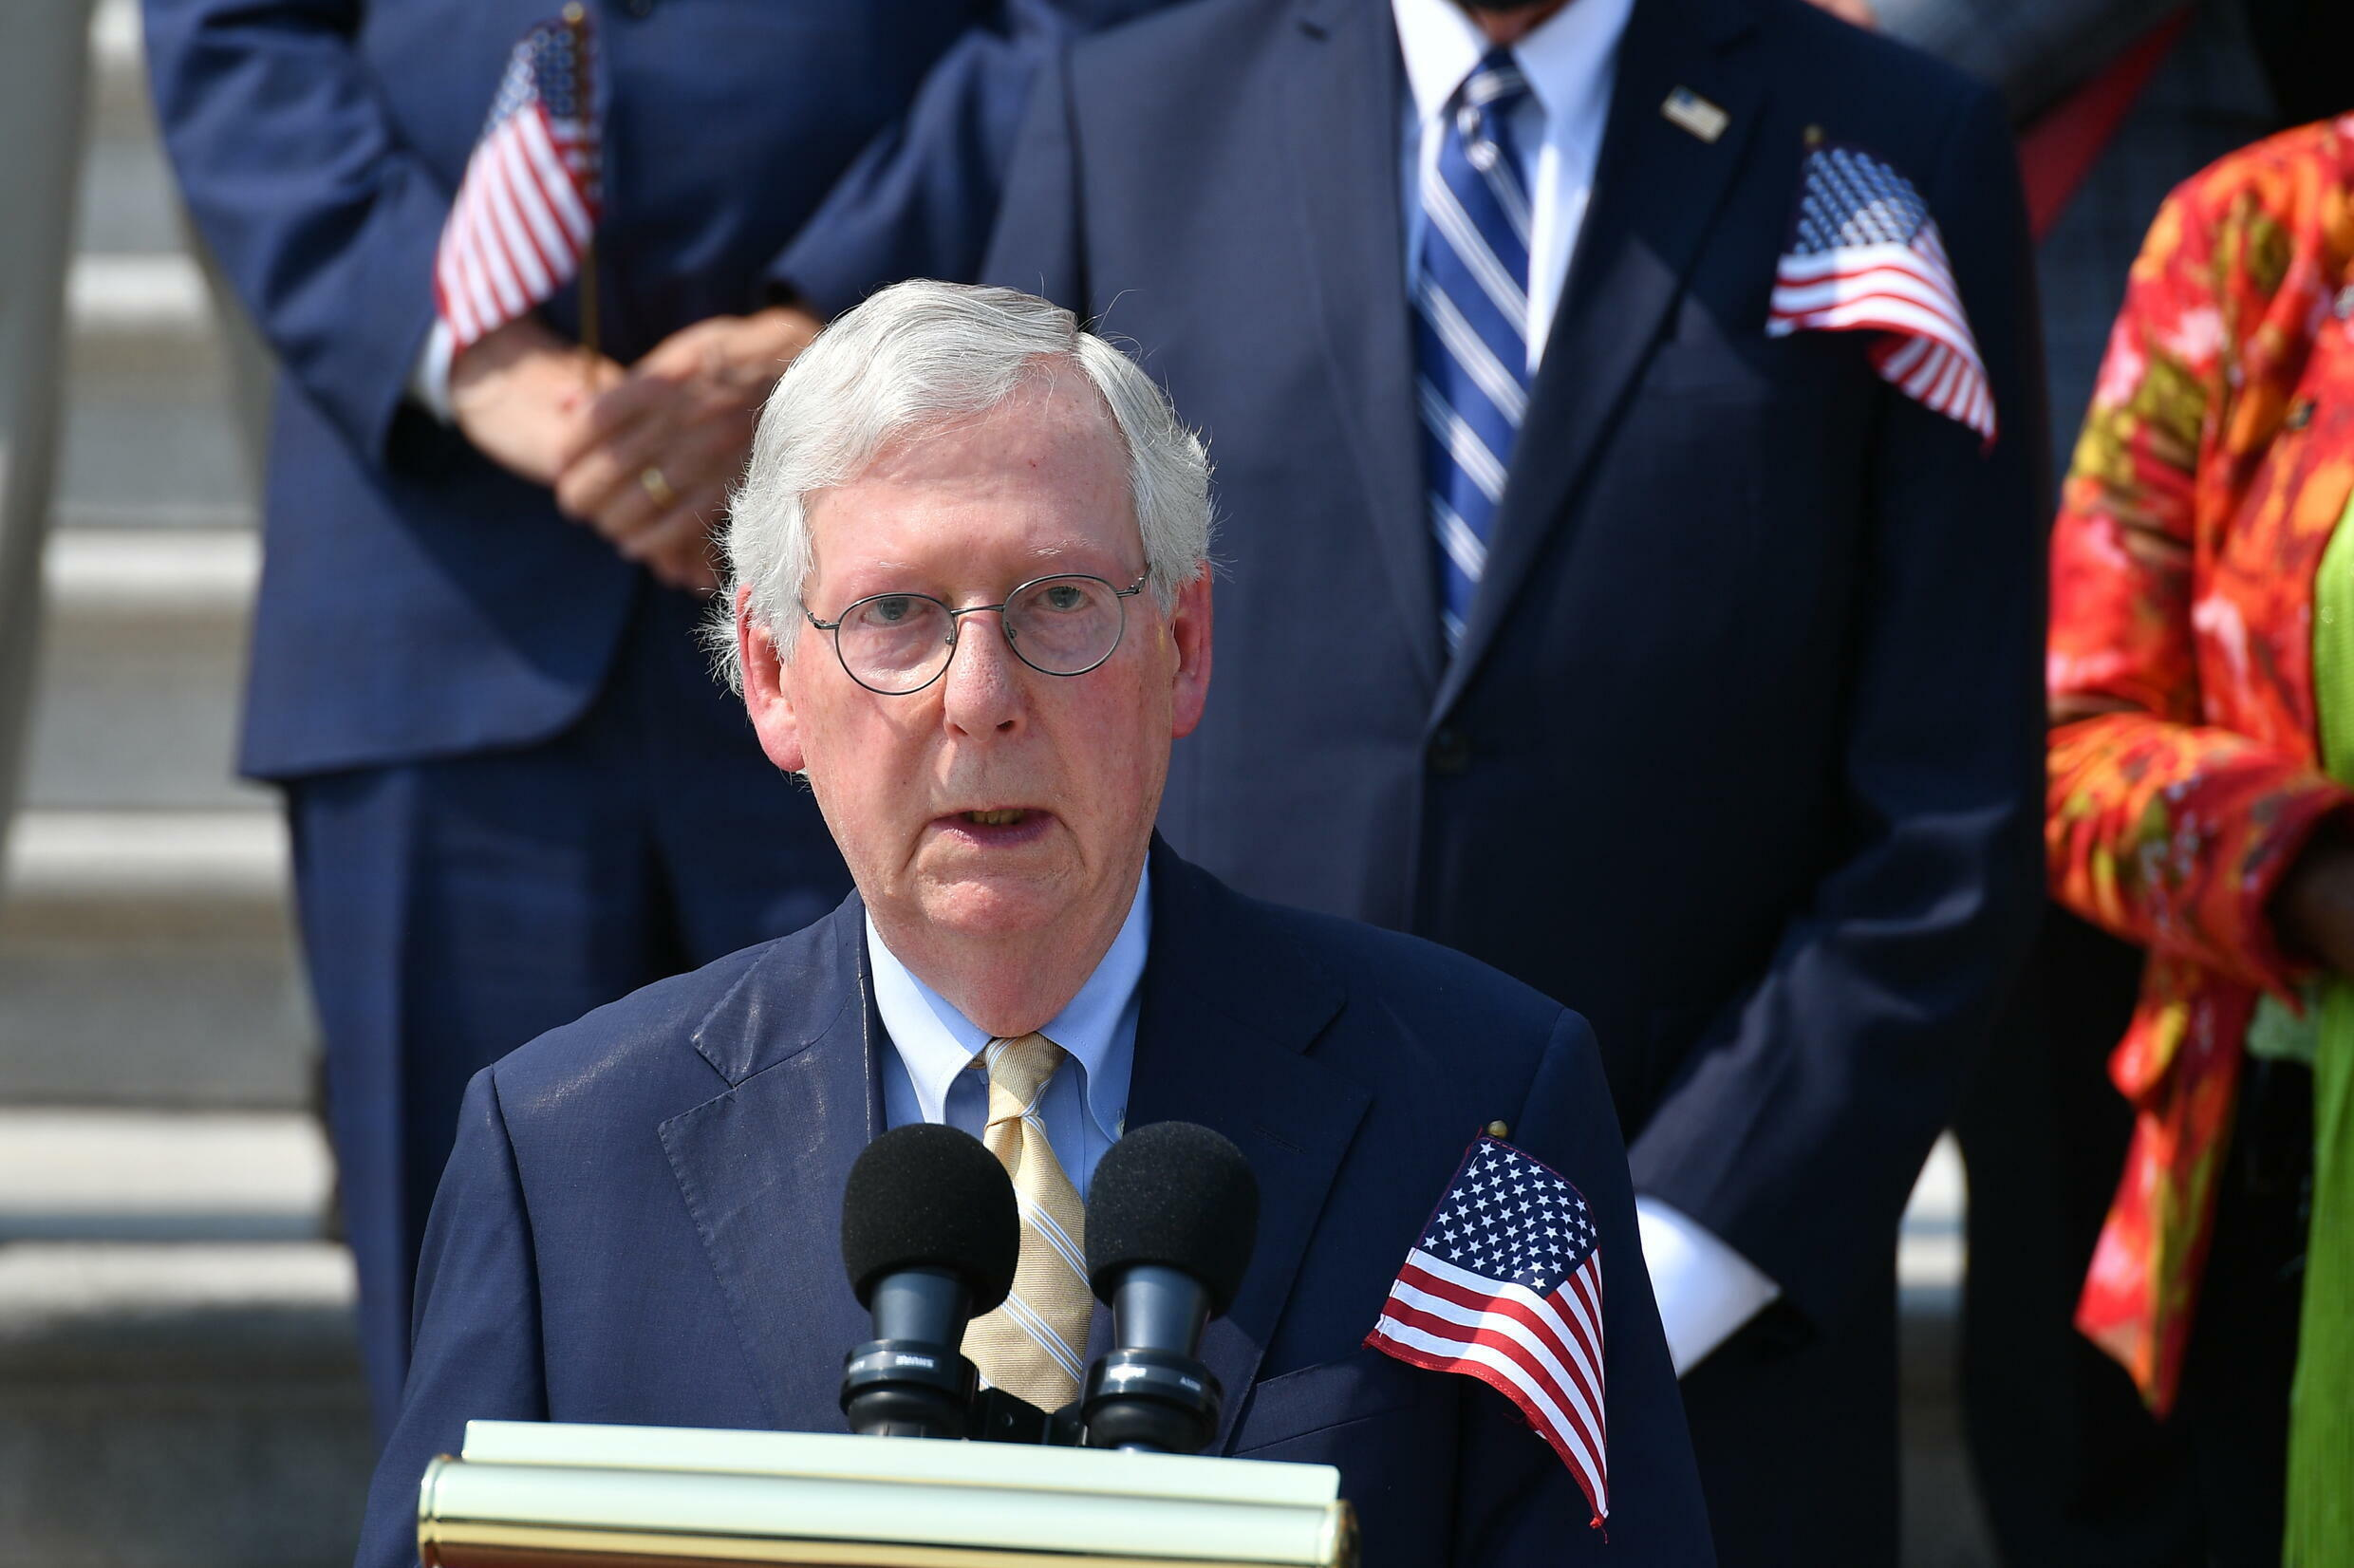 Mitch McConnell in front of the Capitol steps in Washington on September 13, 2021